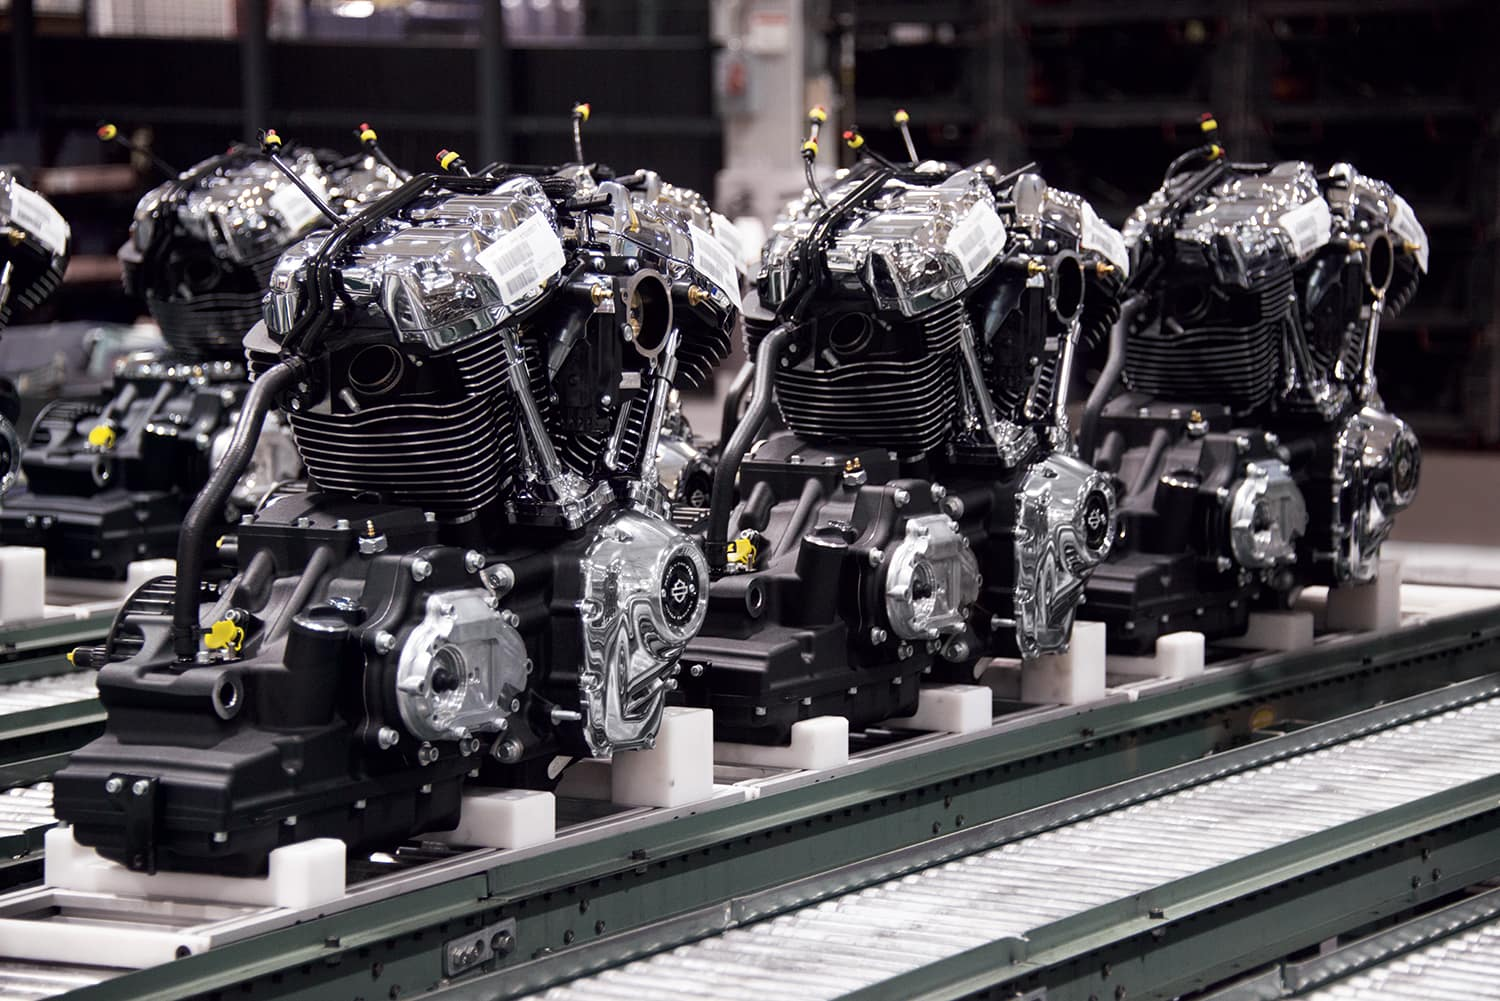 Check Out the Milwaukee-Eight Big Twin Engine from Our Harley-Davidson Dealer